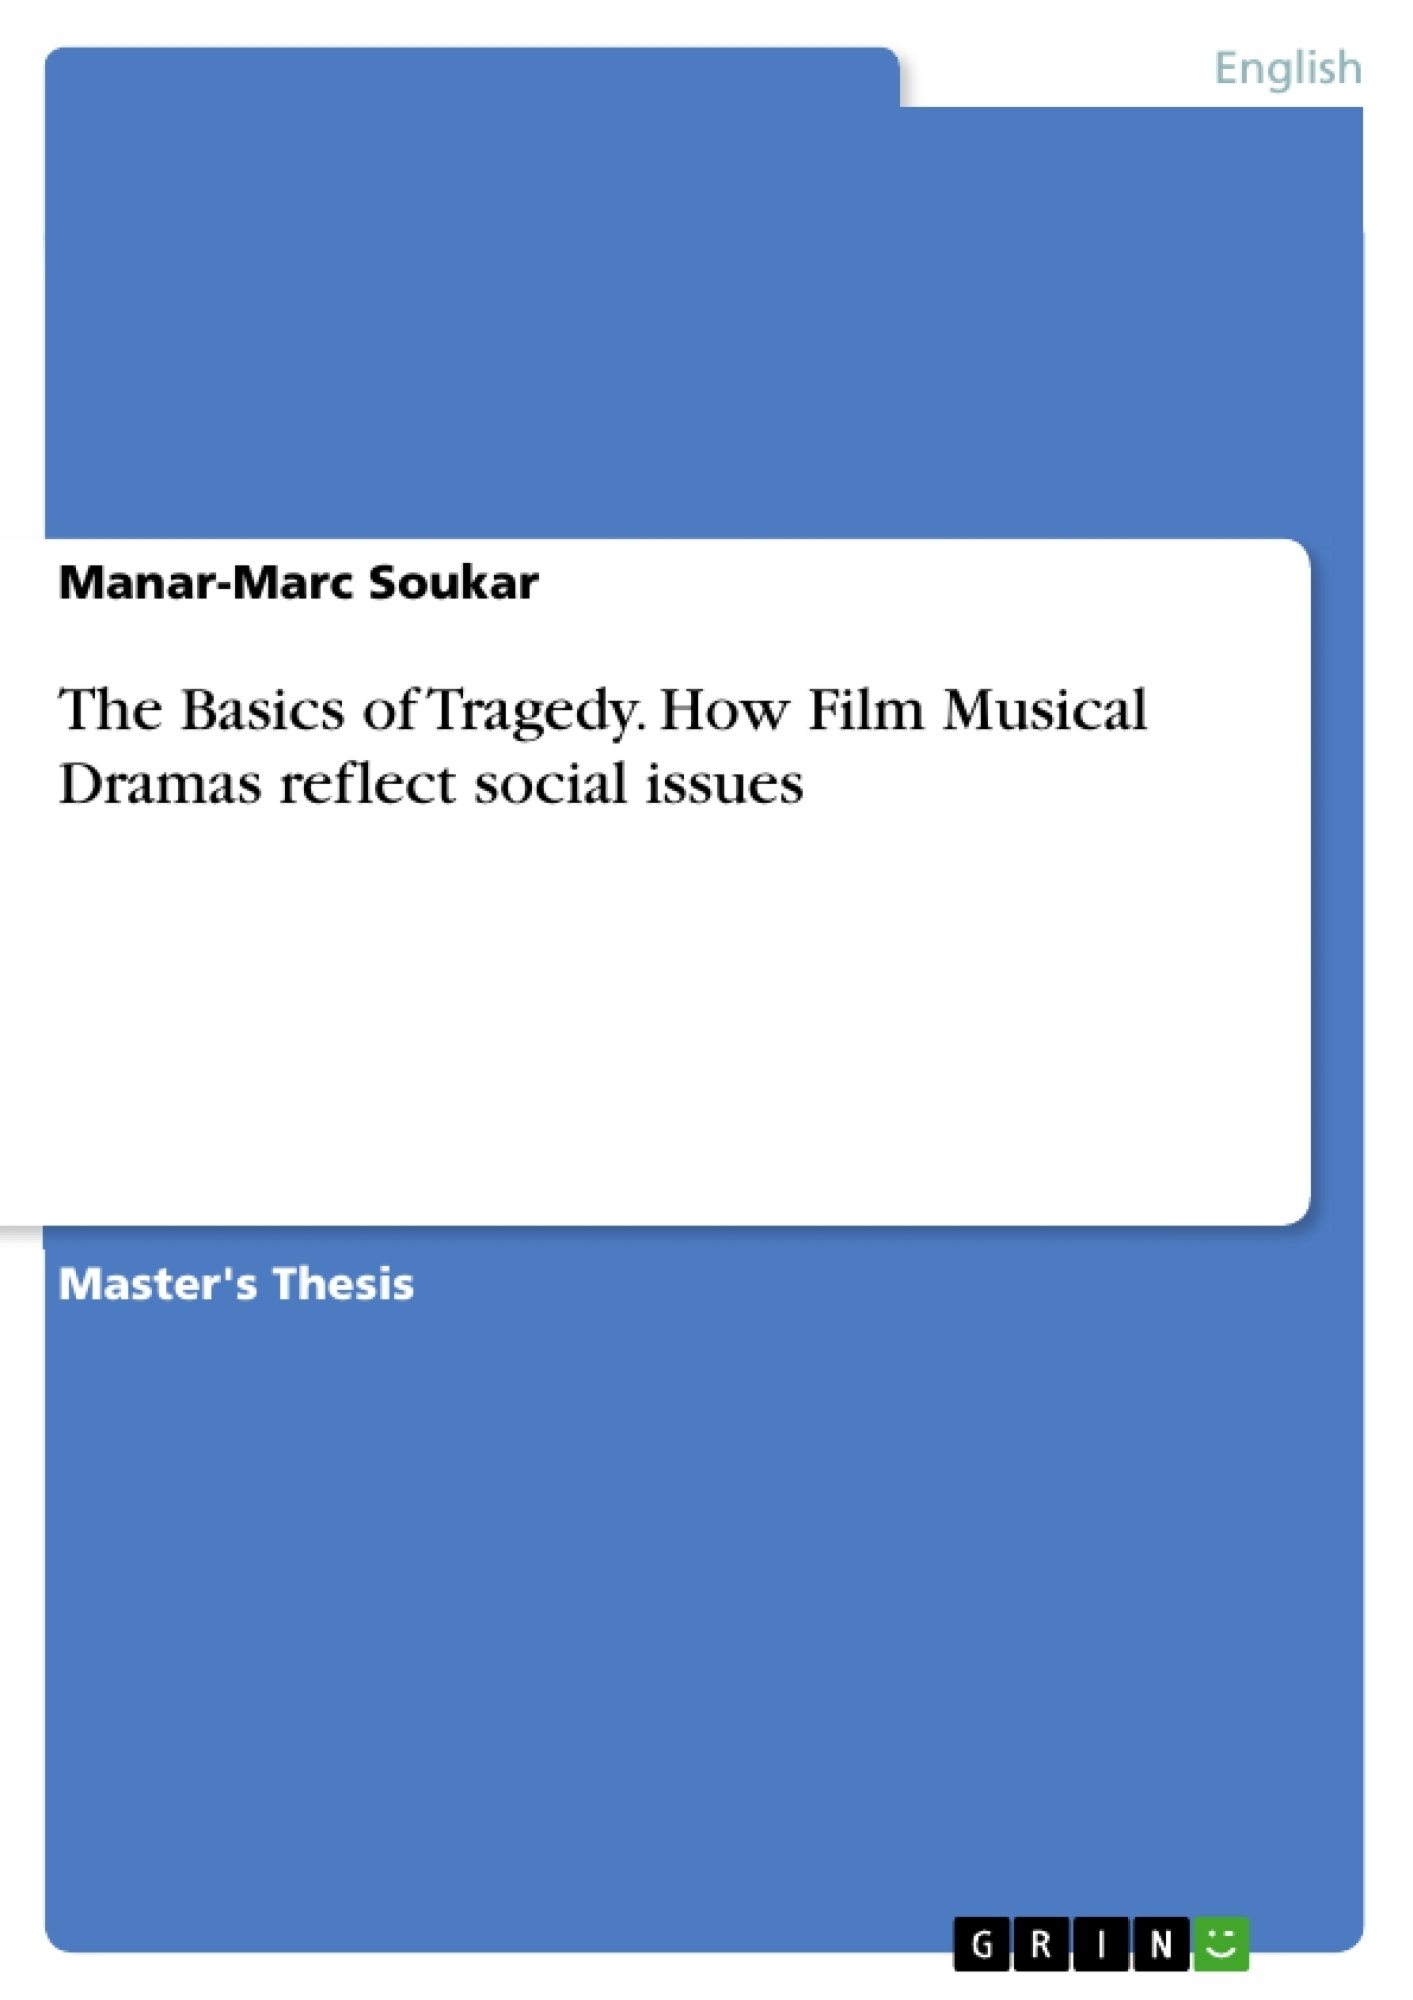 Title: The Basics of Tragedy. How Film Musical Dramas reflect social issues